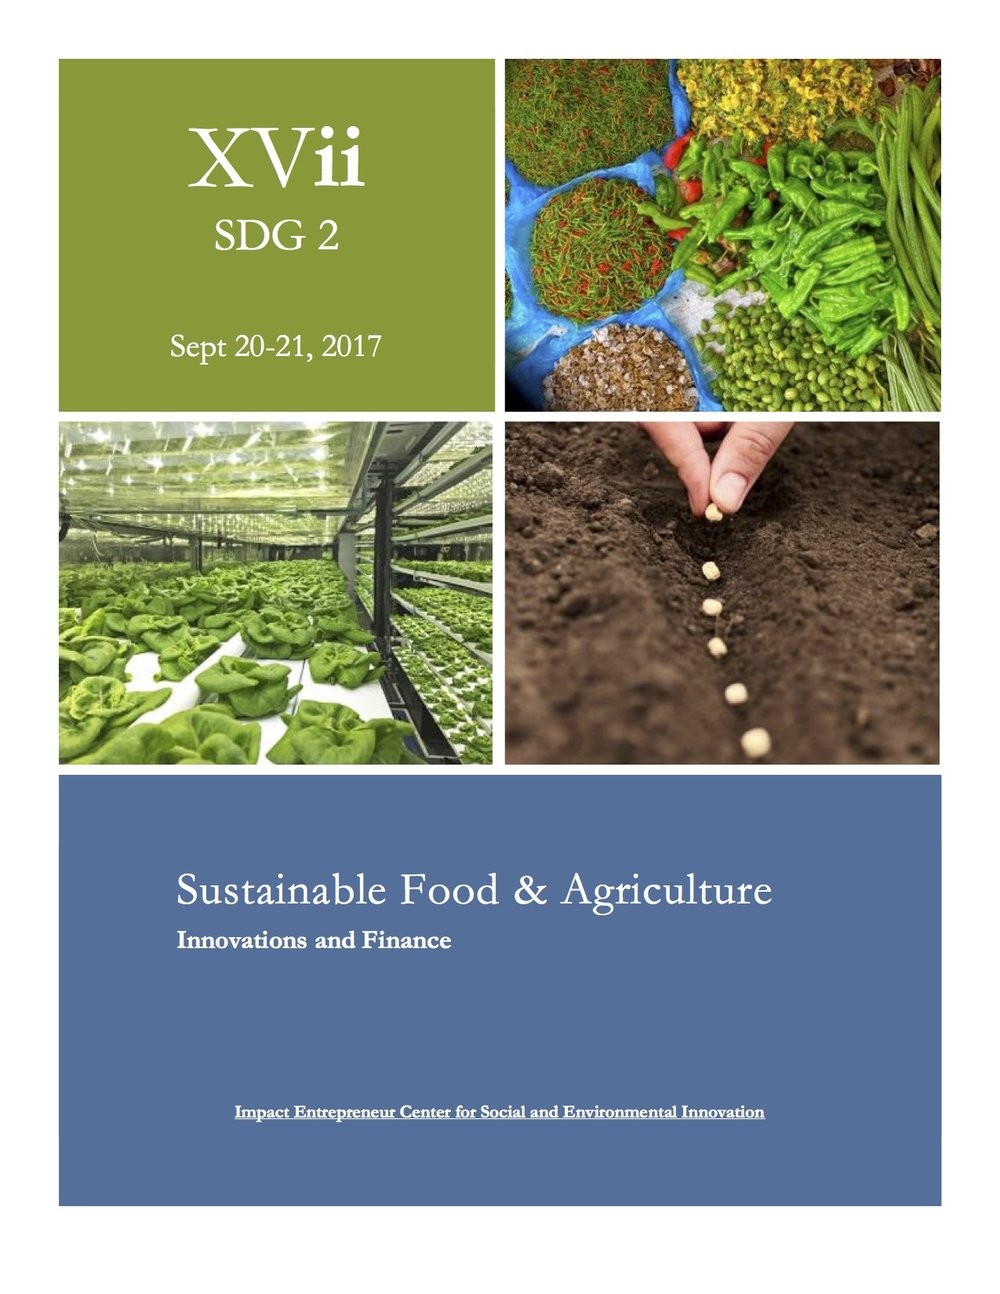 The XVii Initiative's SDG 2 Program focuses on Sustainable Food and Agriculture